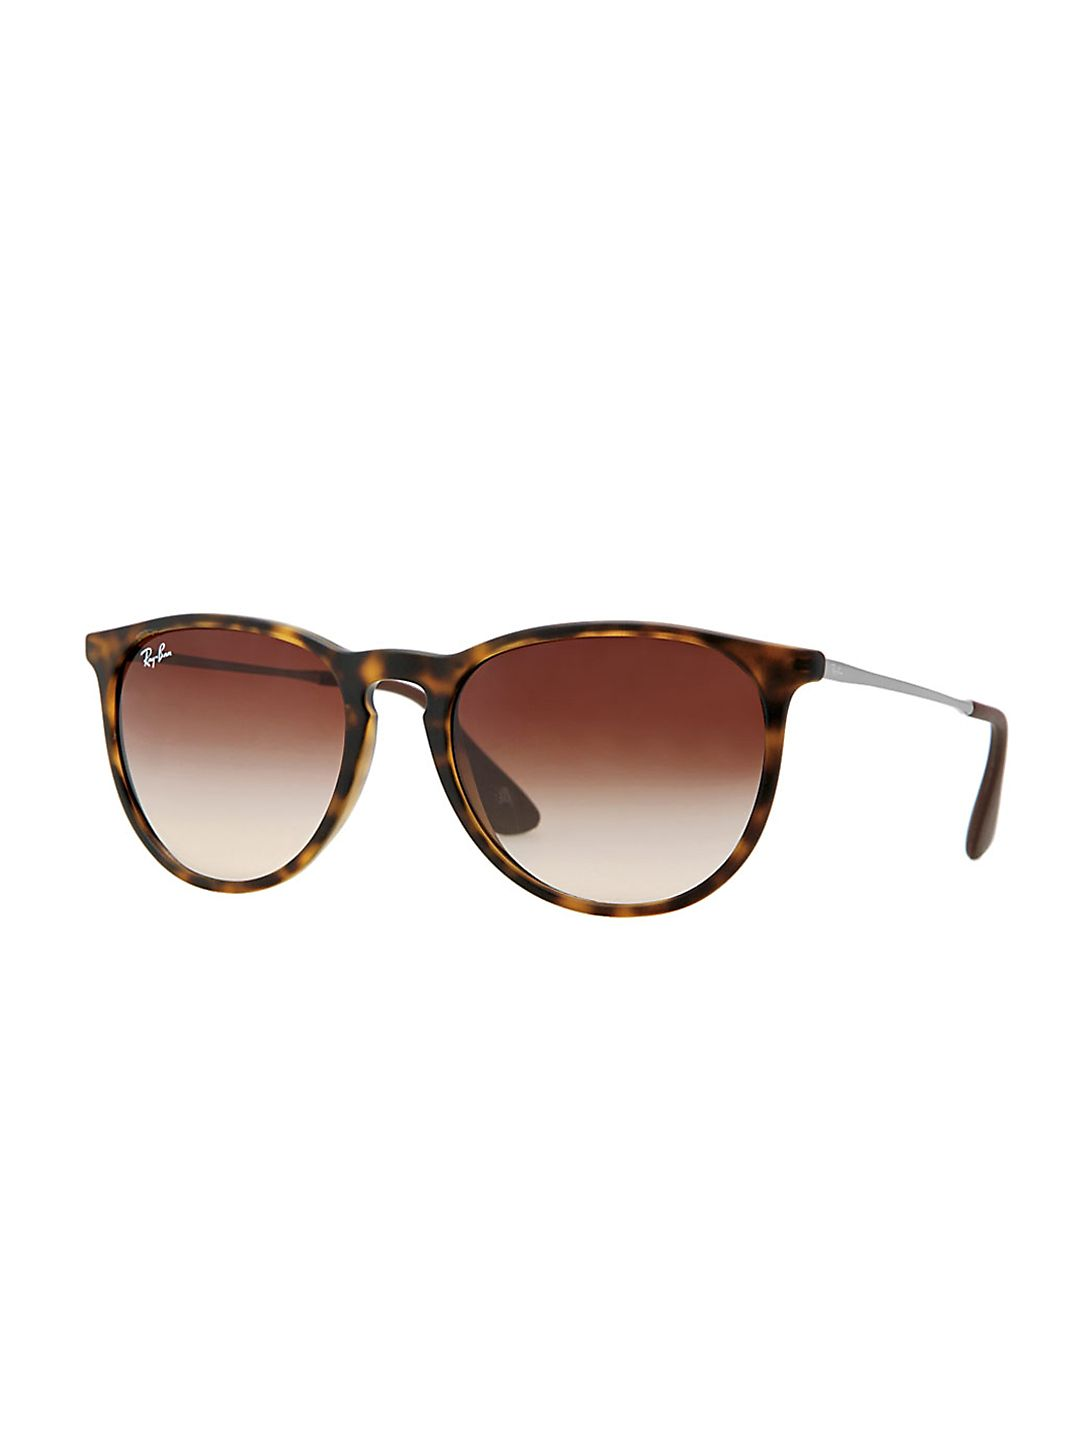 Ray-Ban Women's RB4171 Erika Sunglasses, 54mm